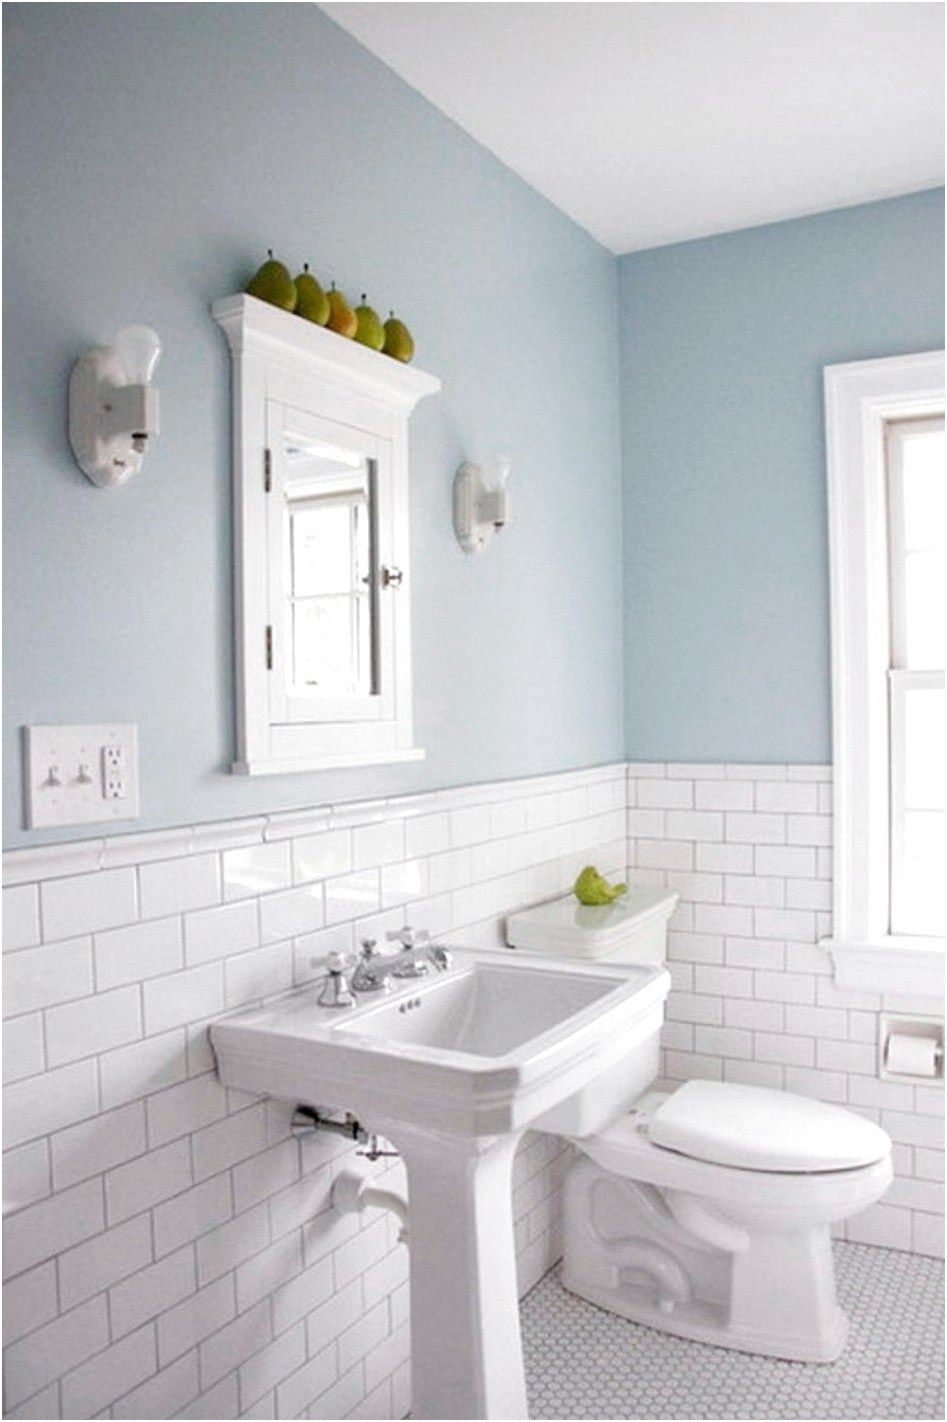 Bathroom Best Ways In How To Tile A Bathroom Floor For Luxurious Look White Subyway Color Comb White Subway Tile Shower Bathroom Wall Tile Light Blue Bathroom